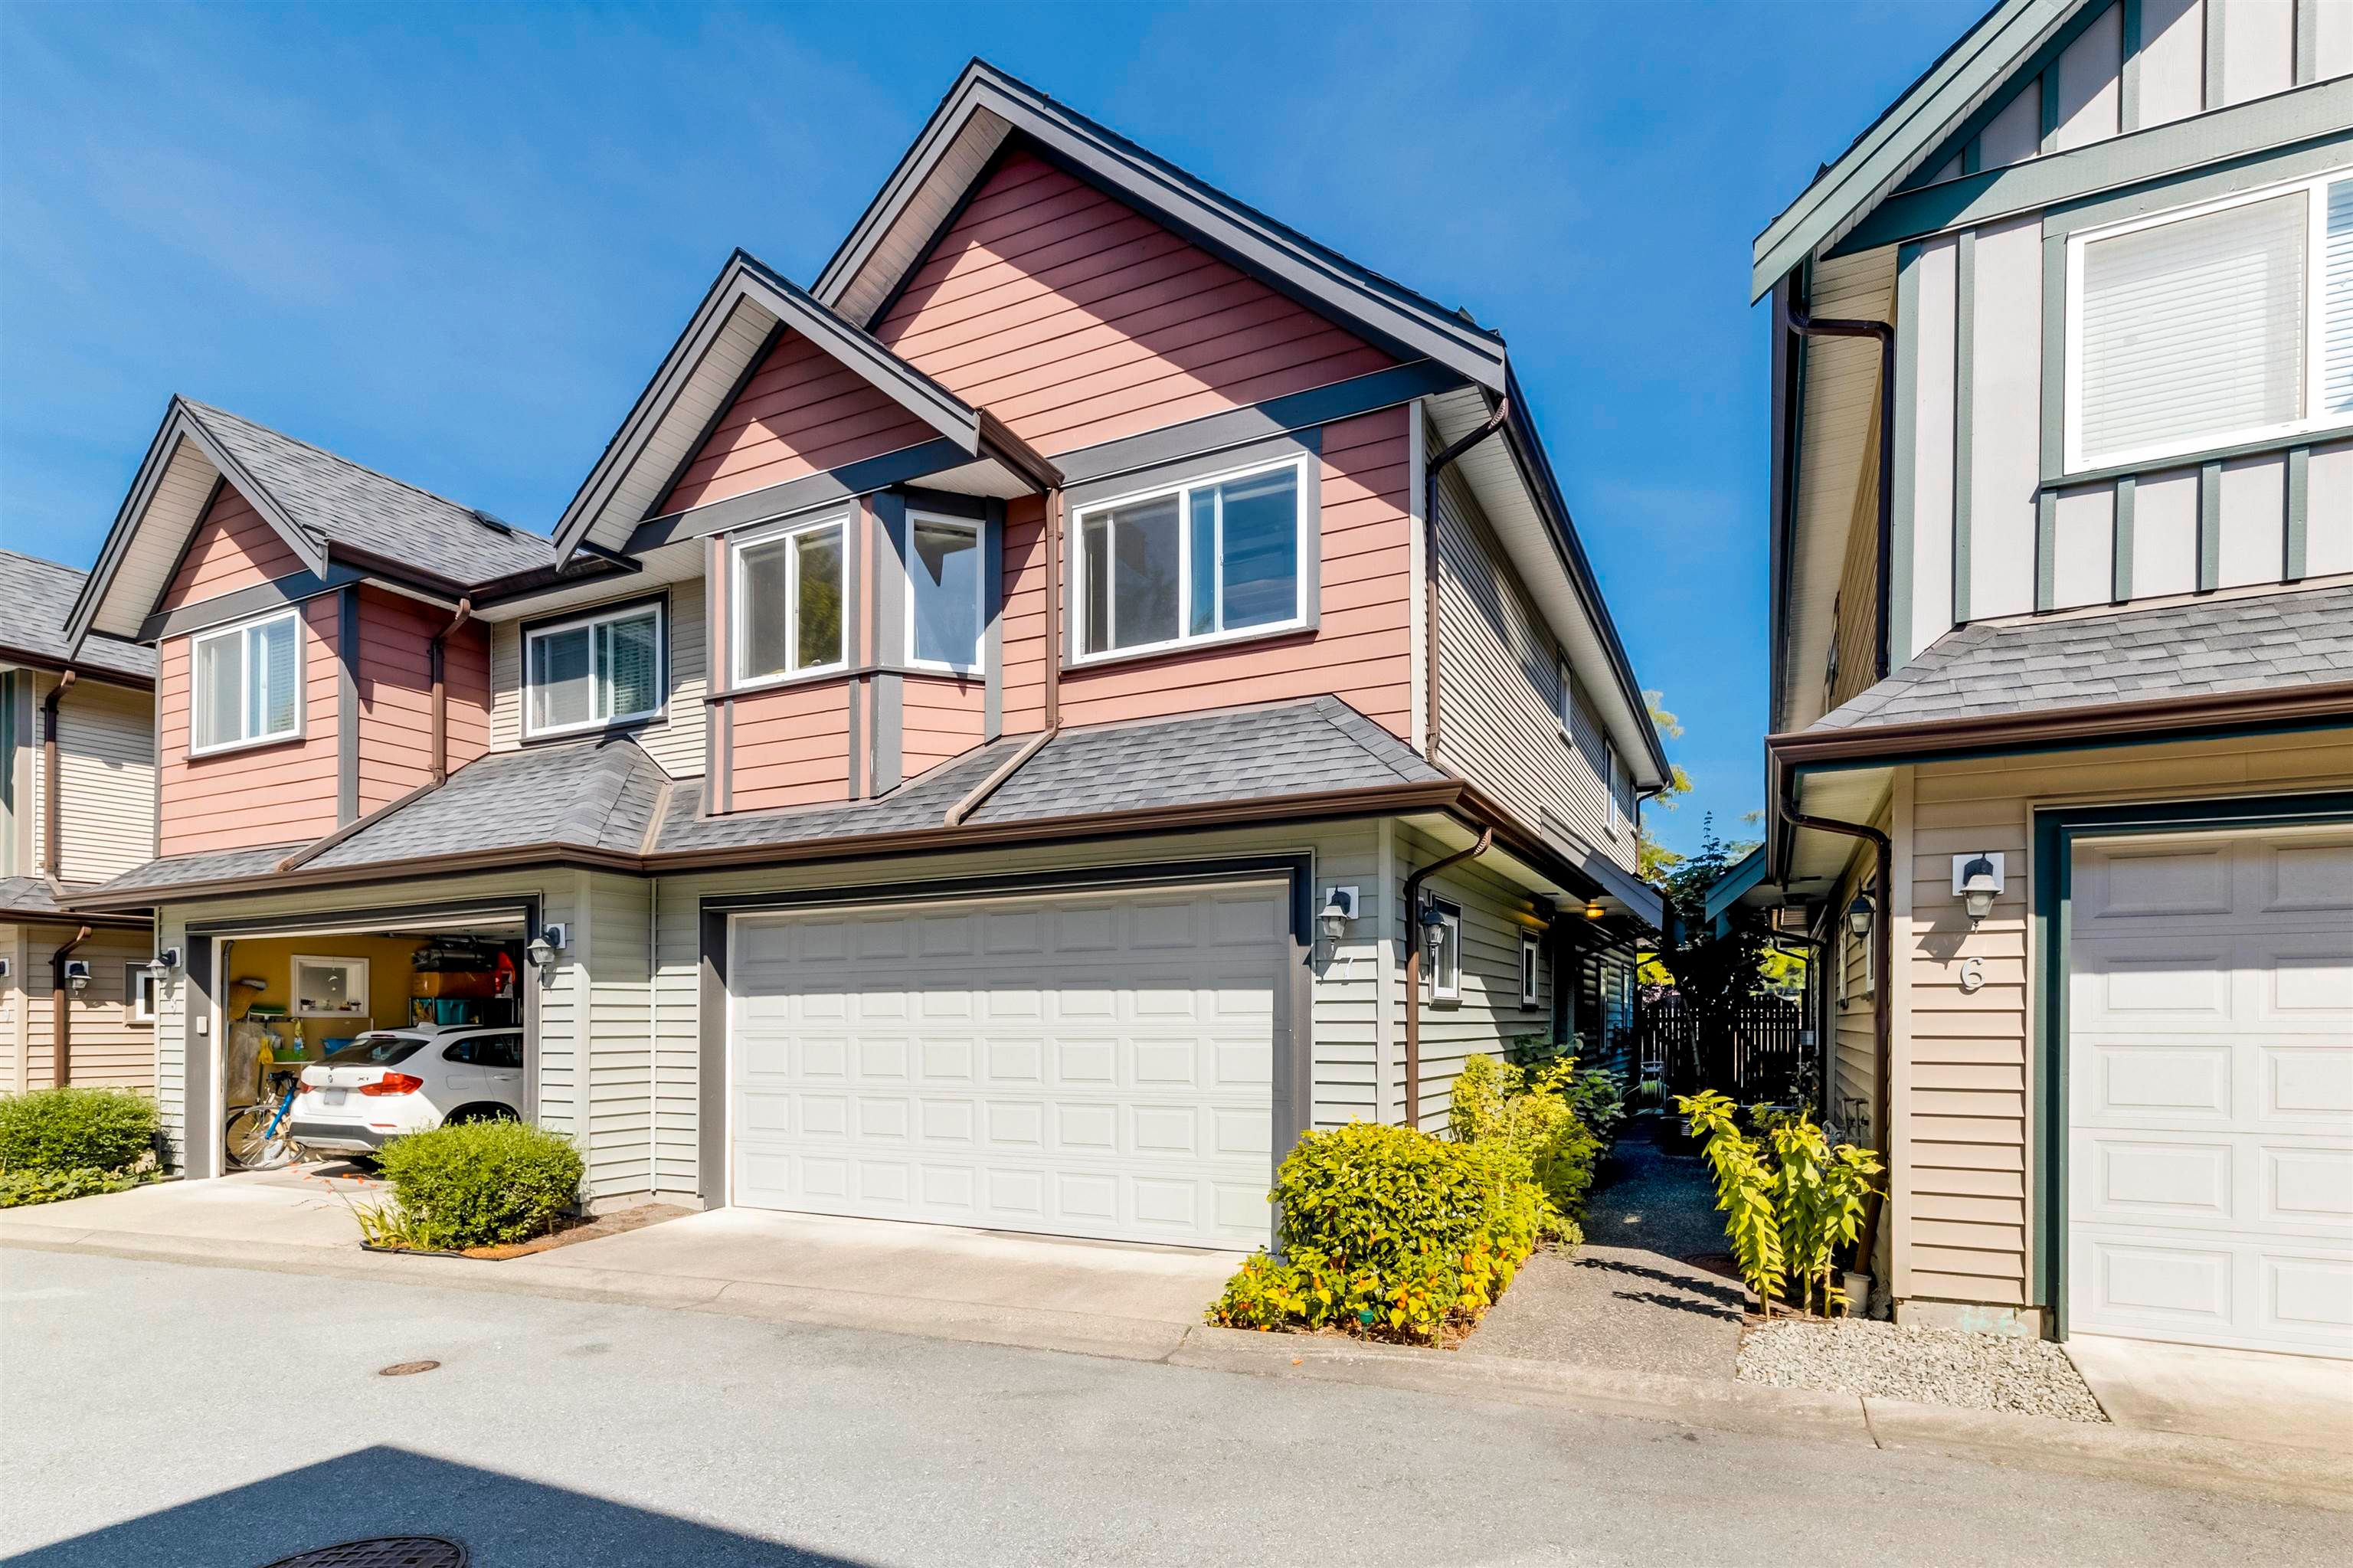 """Main Photo: 7 11100 NO. 1 Road in Richmond: Steveston South Townhouse for sale in """"BRITANIA COURT"""" : MLS®# R2608999"""